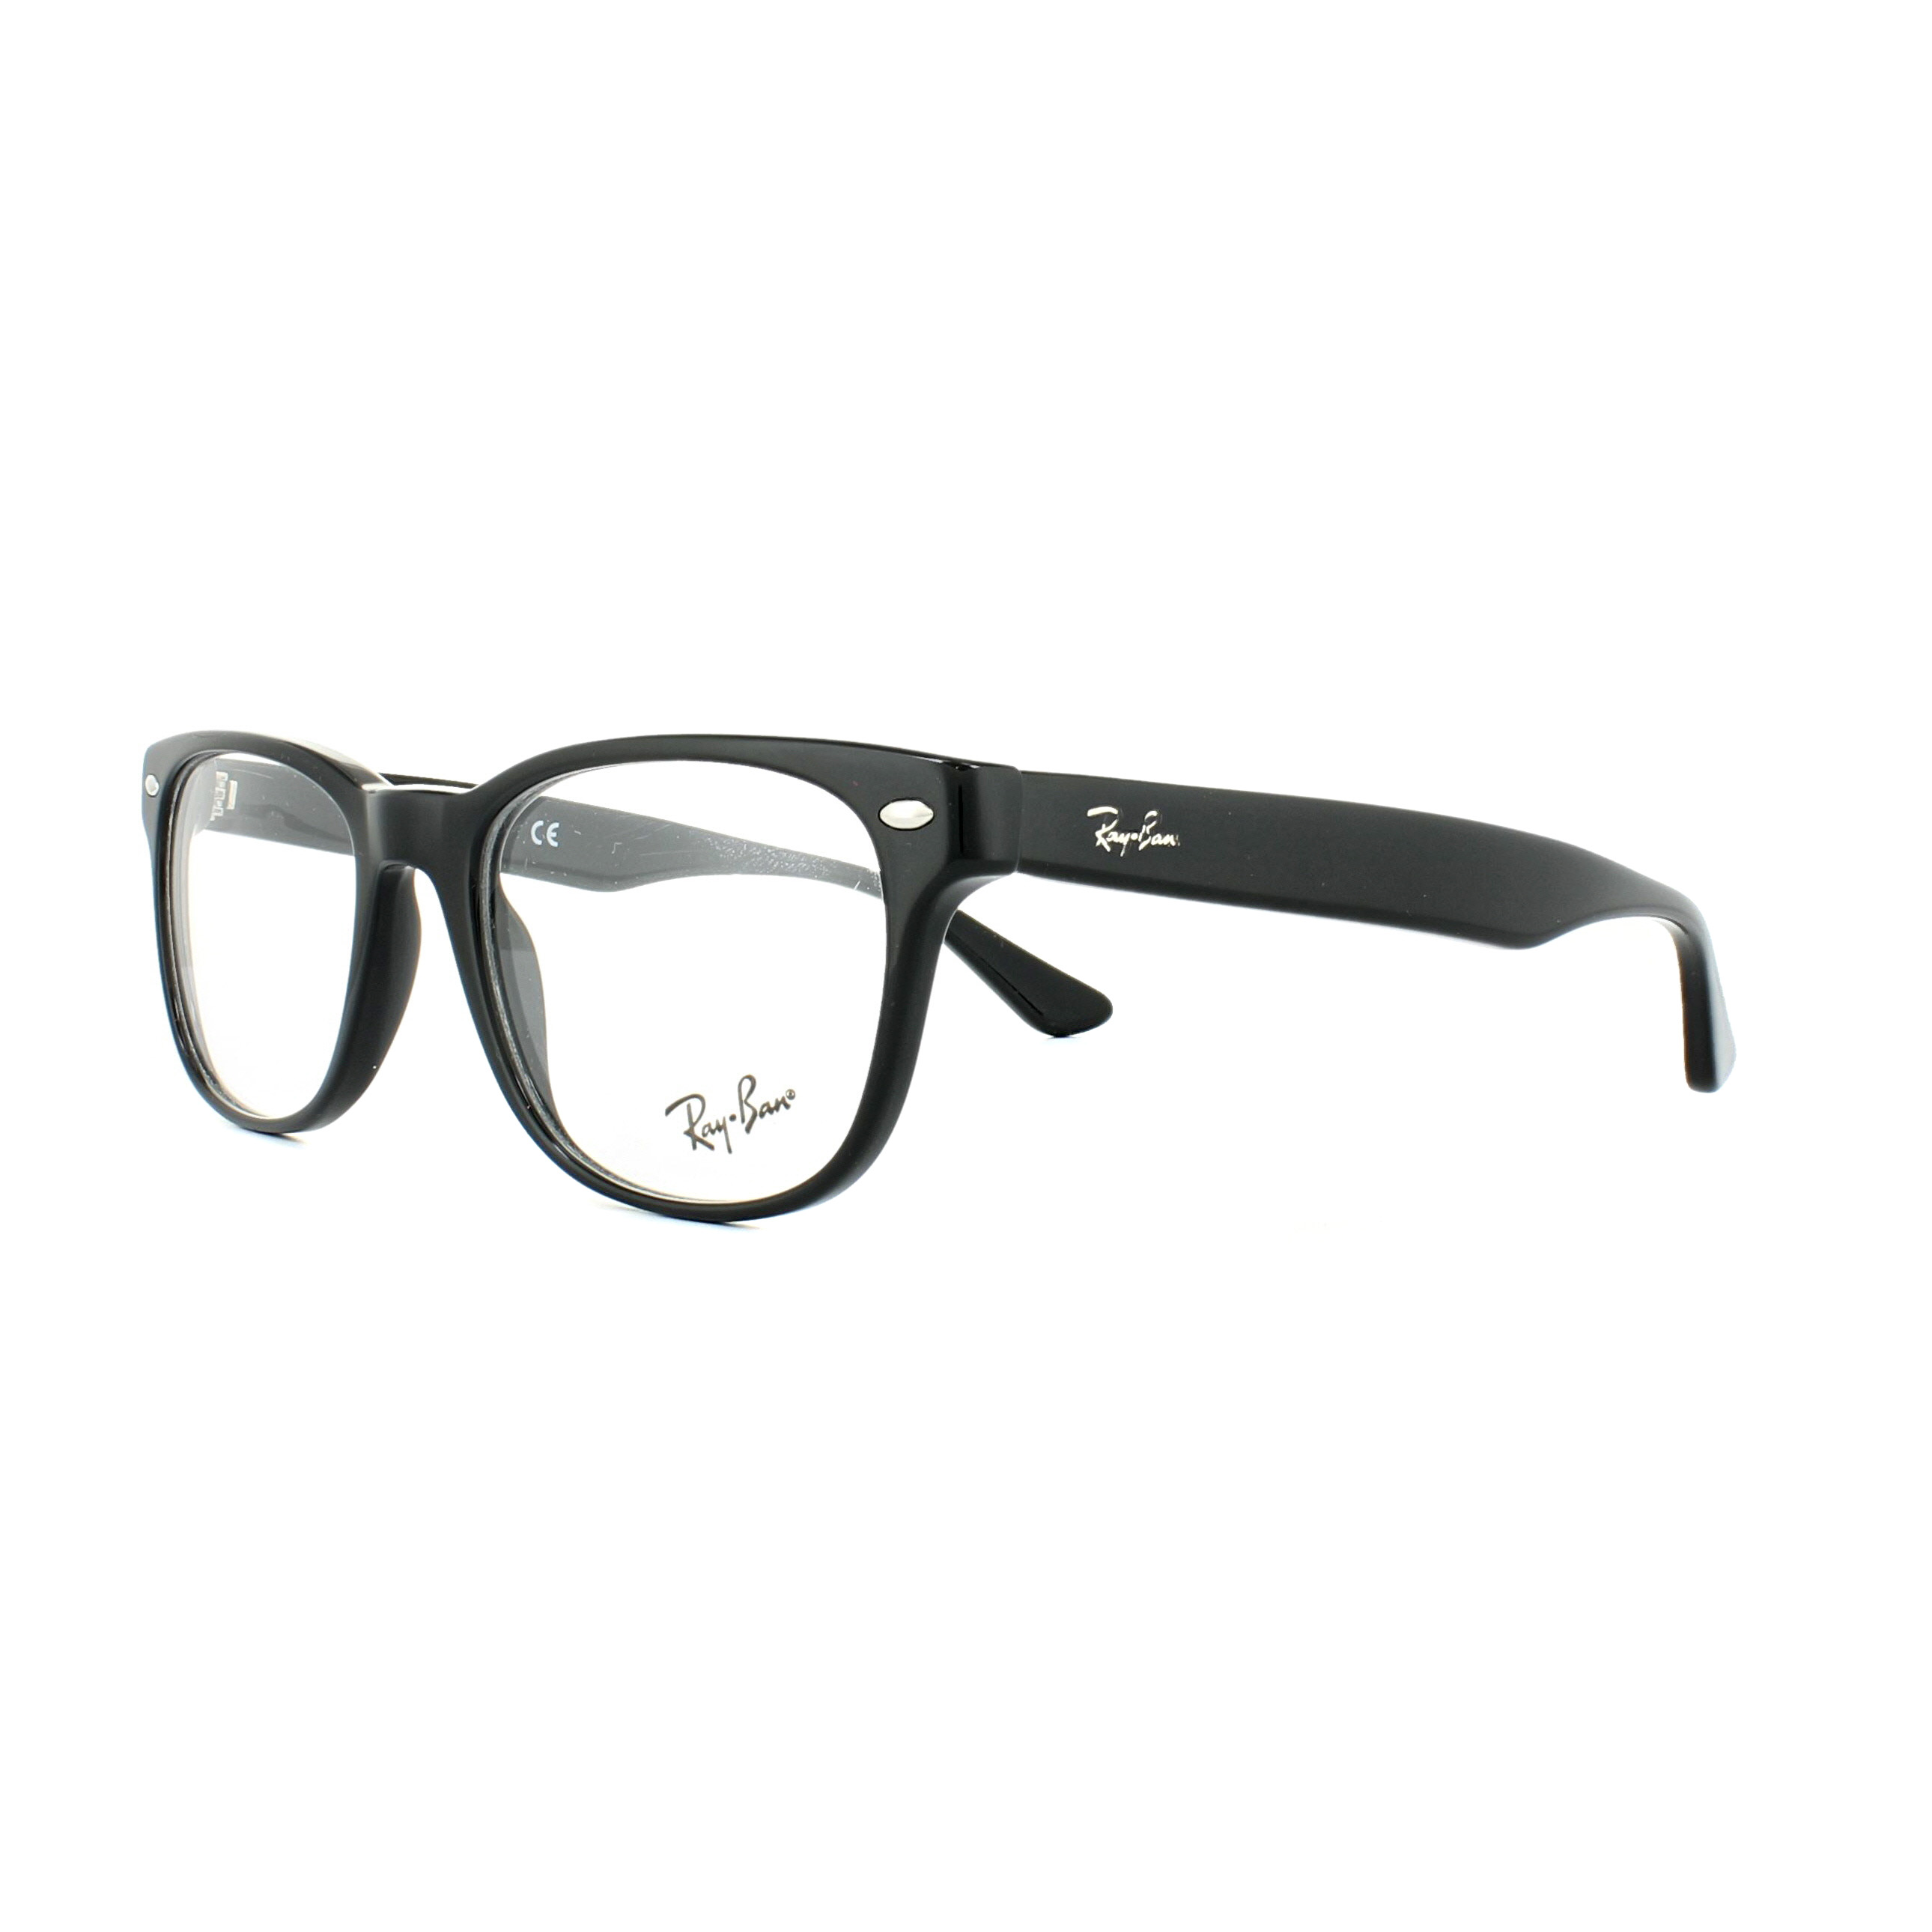 72e53d286d Sentinel Ray-Ban Glasses Frames 5359 2000 Shiny Black 51mm Mens